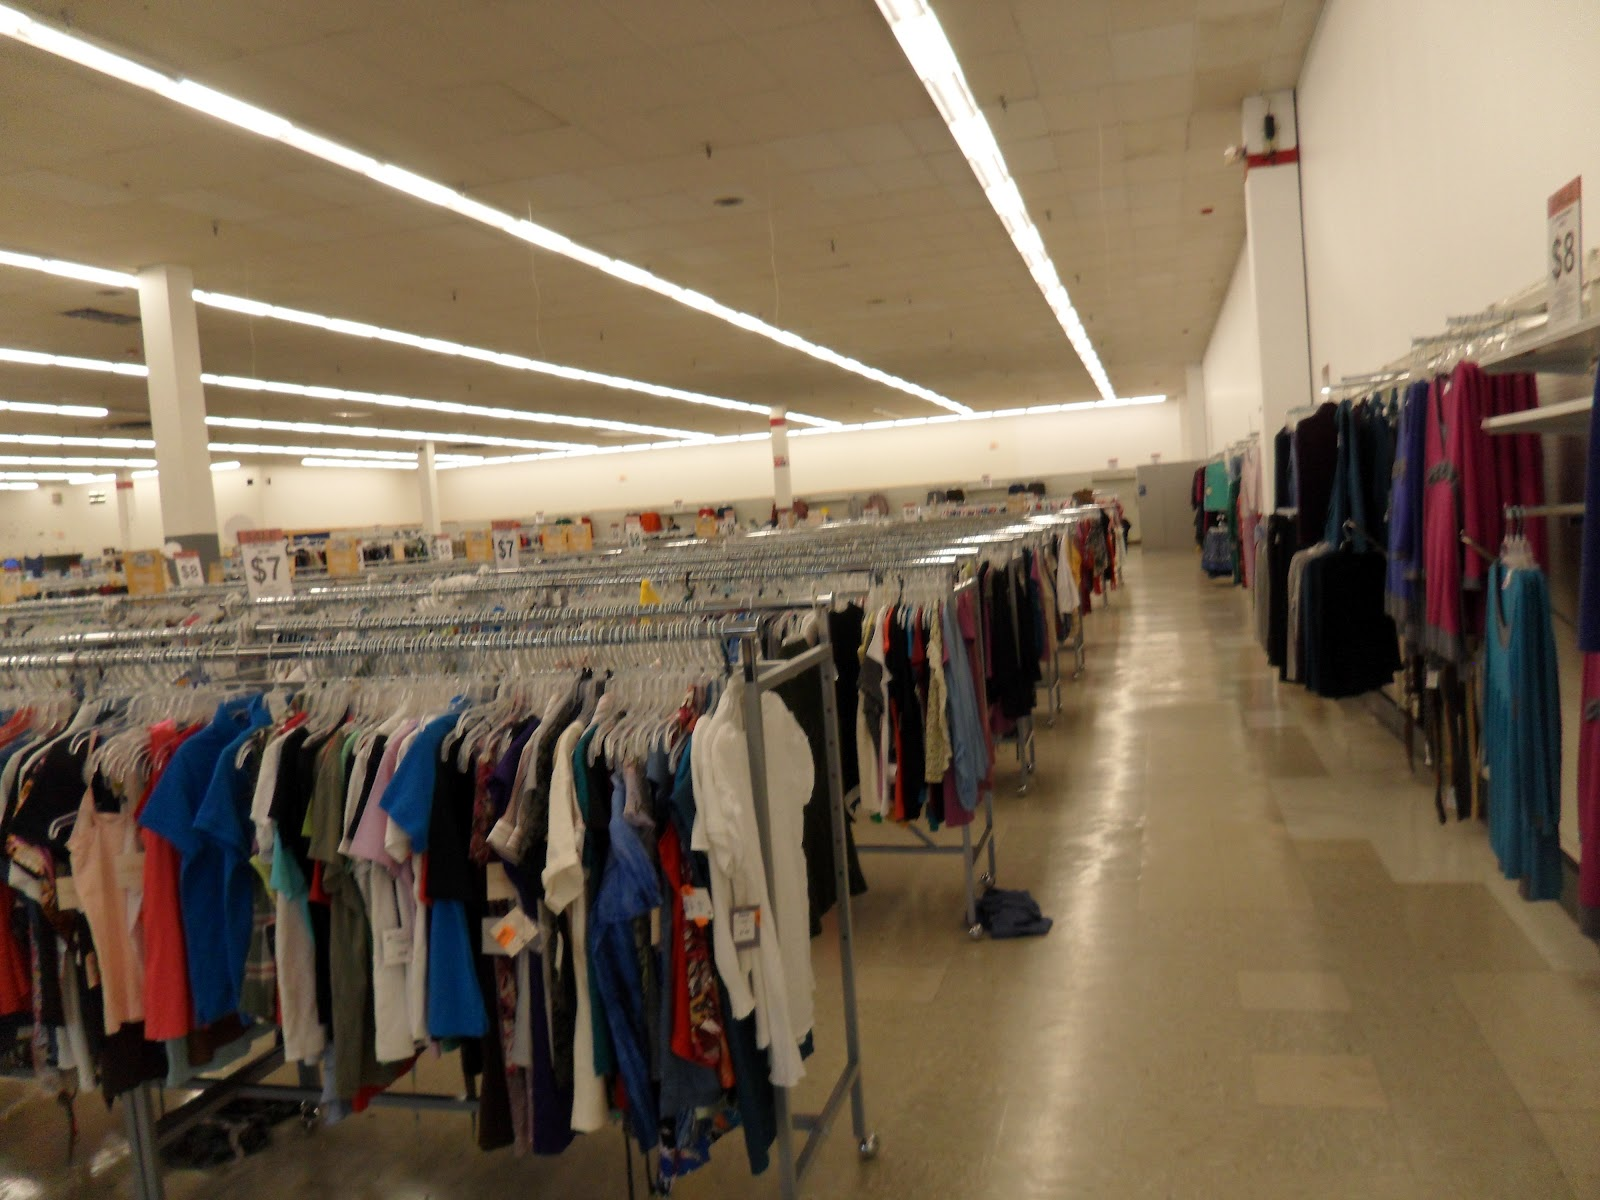 Kmart World: Spotlight: Sears Outlet / Former Kmart - Marietta, GA